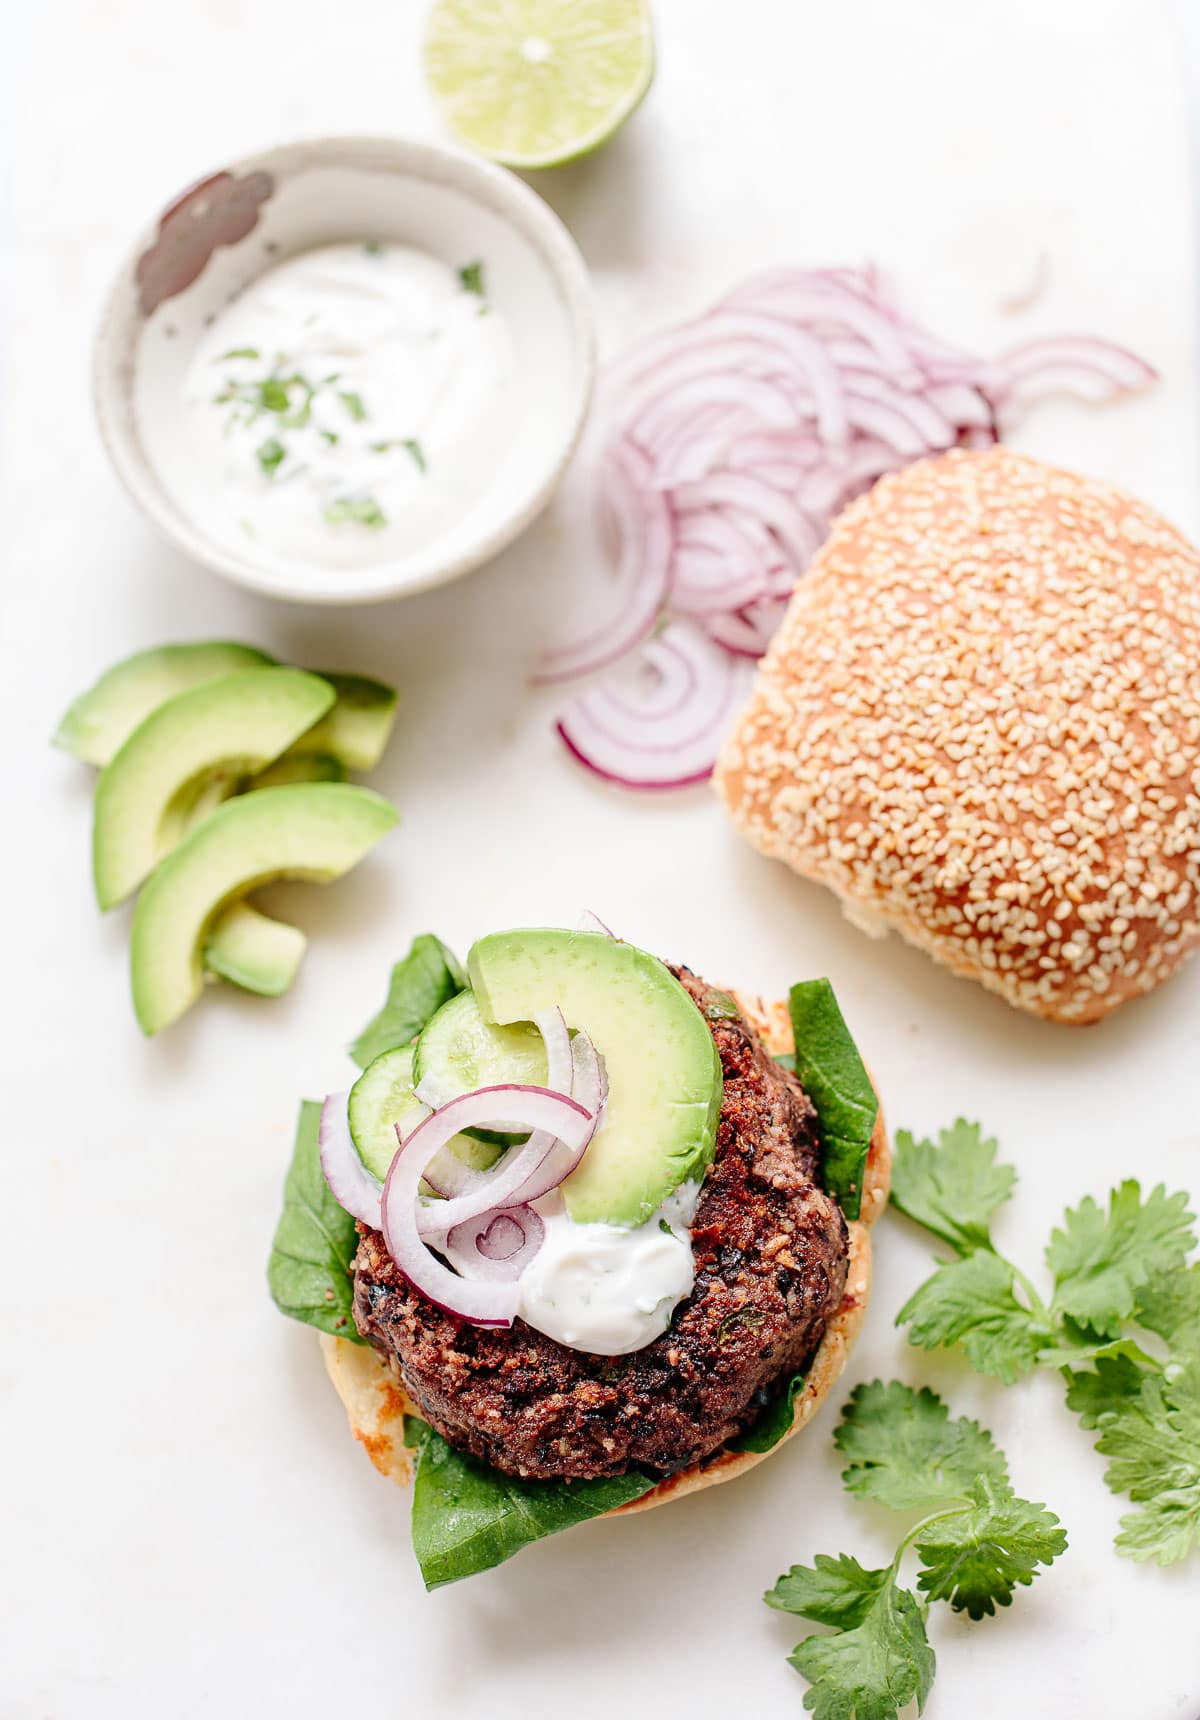 Black bean burger on a bun with avocado, greens, onion and lime mayo topping.